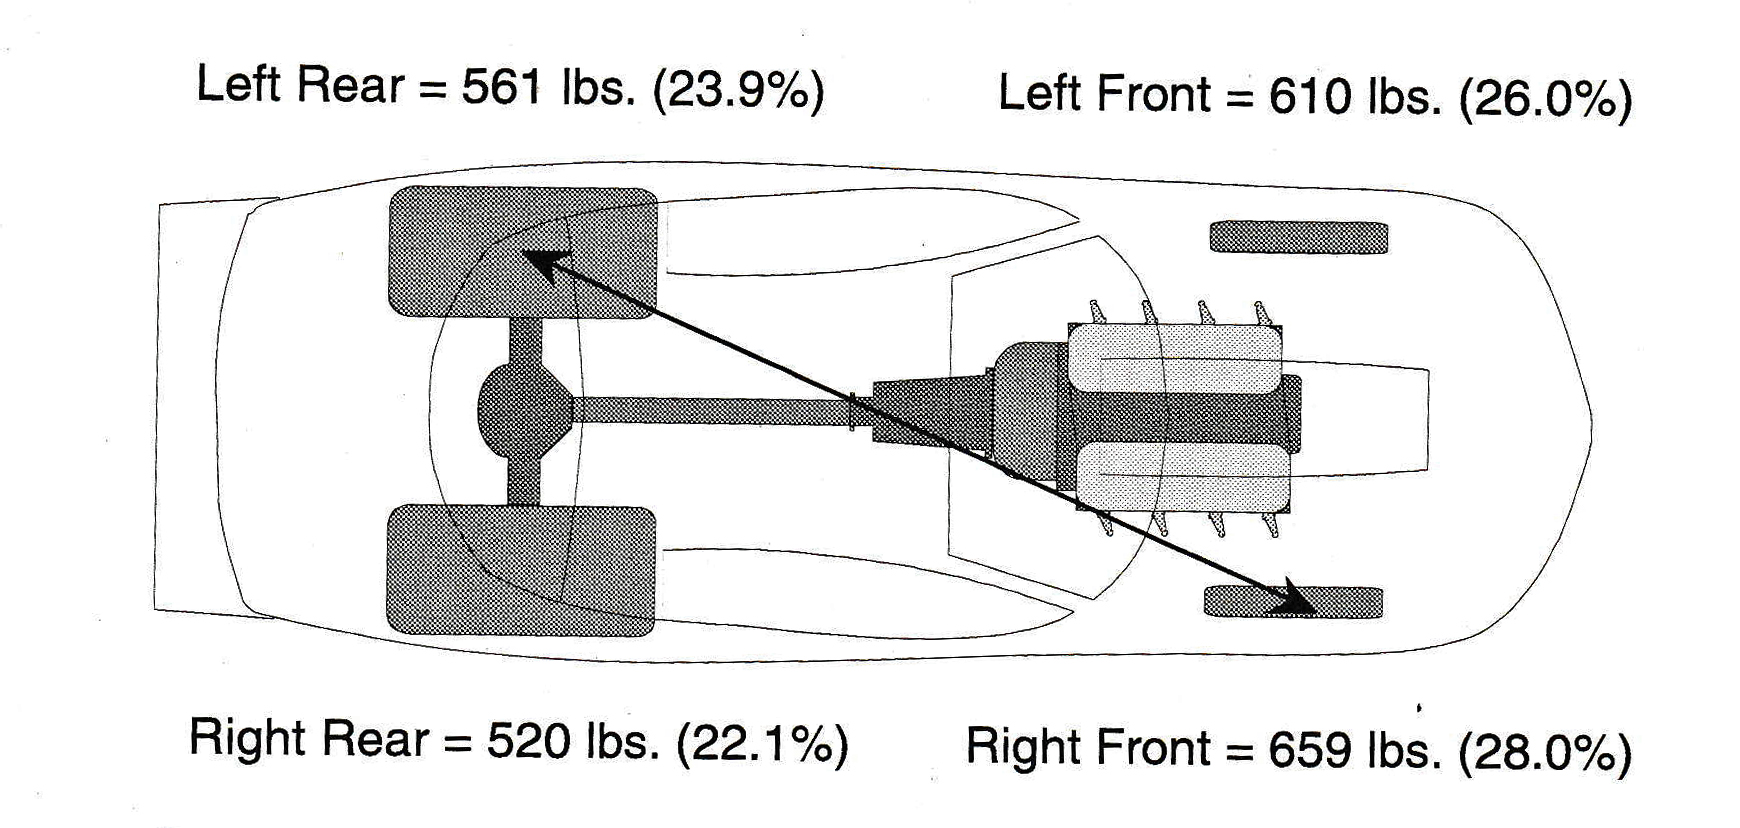 Drag Race Car Weight Distribution